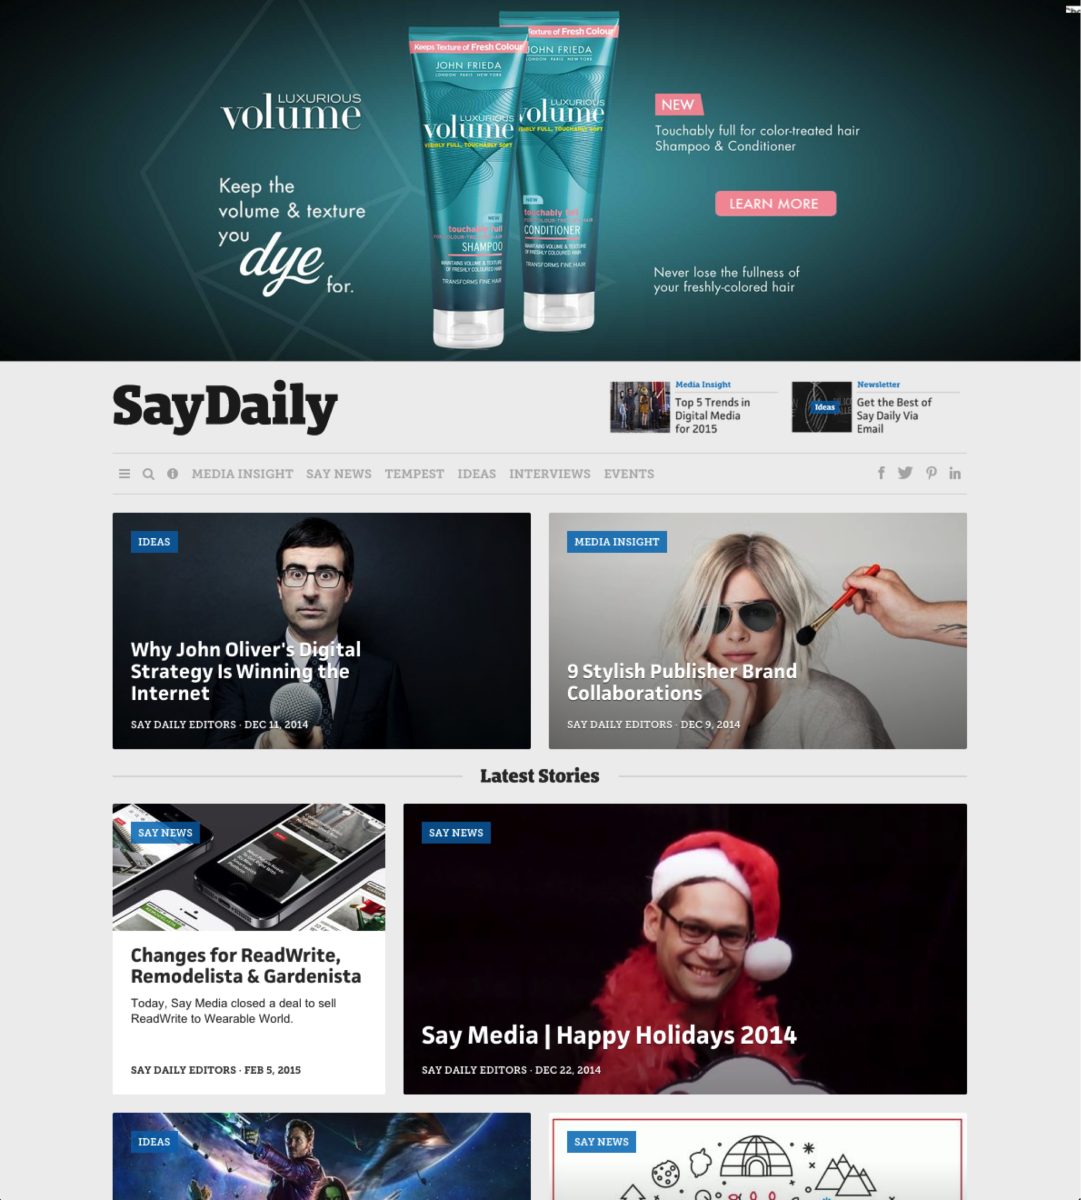 Above-the-fold advertising placements